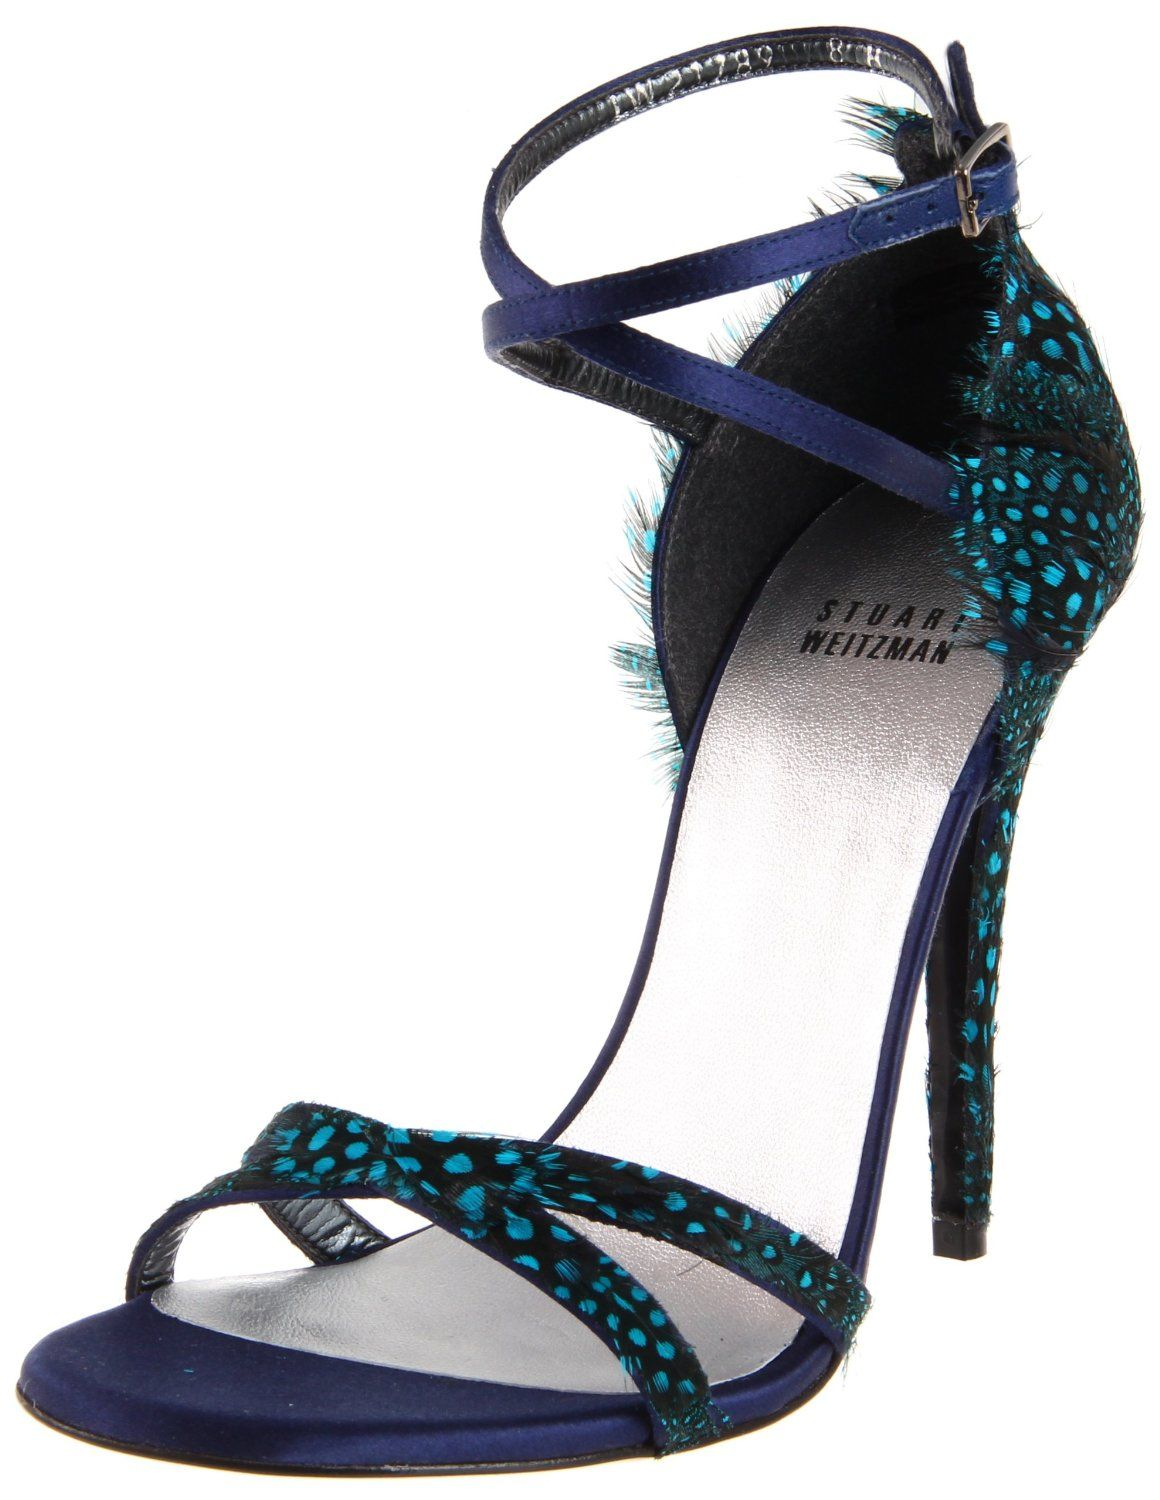 Stuart Weitzman Women's Lesplumes Sandal - designer shoes, handbags, jewelry, watches, and fashion accessories | endless.com